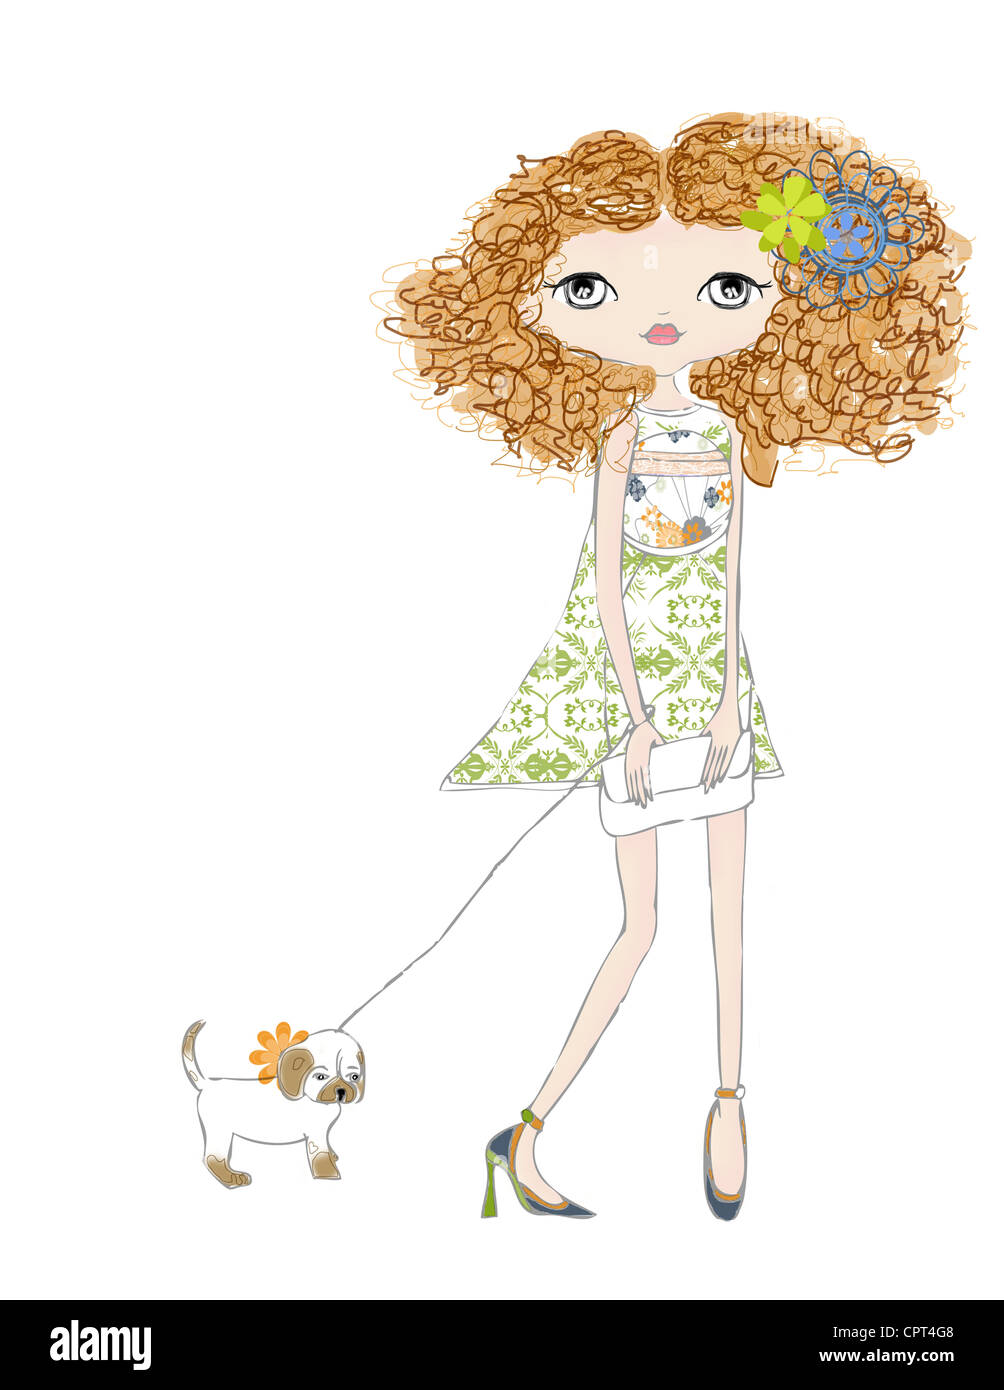 A girl with curly hair walking her puppy - Stock Image